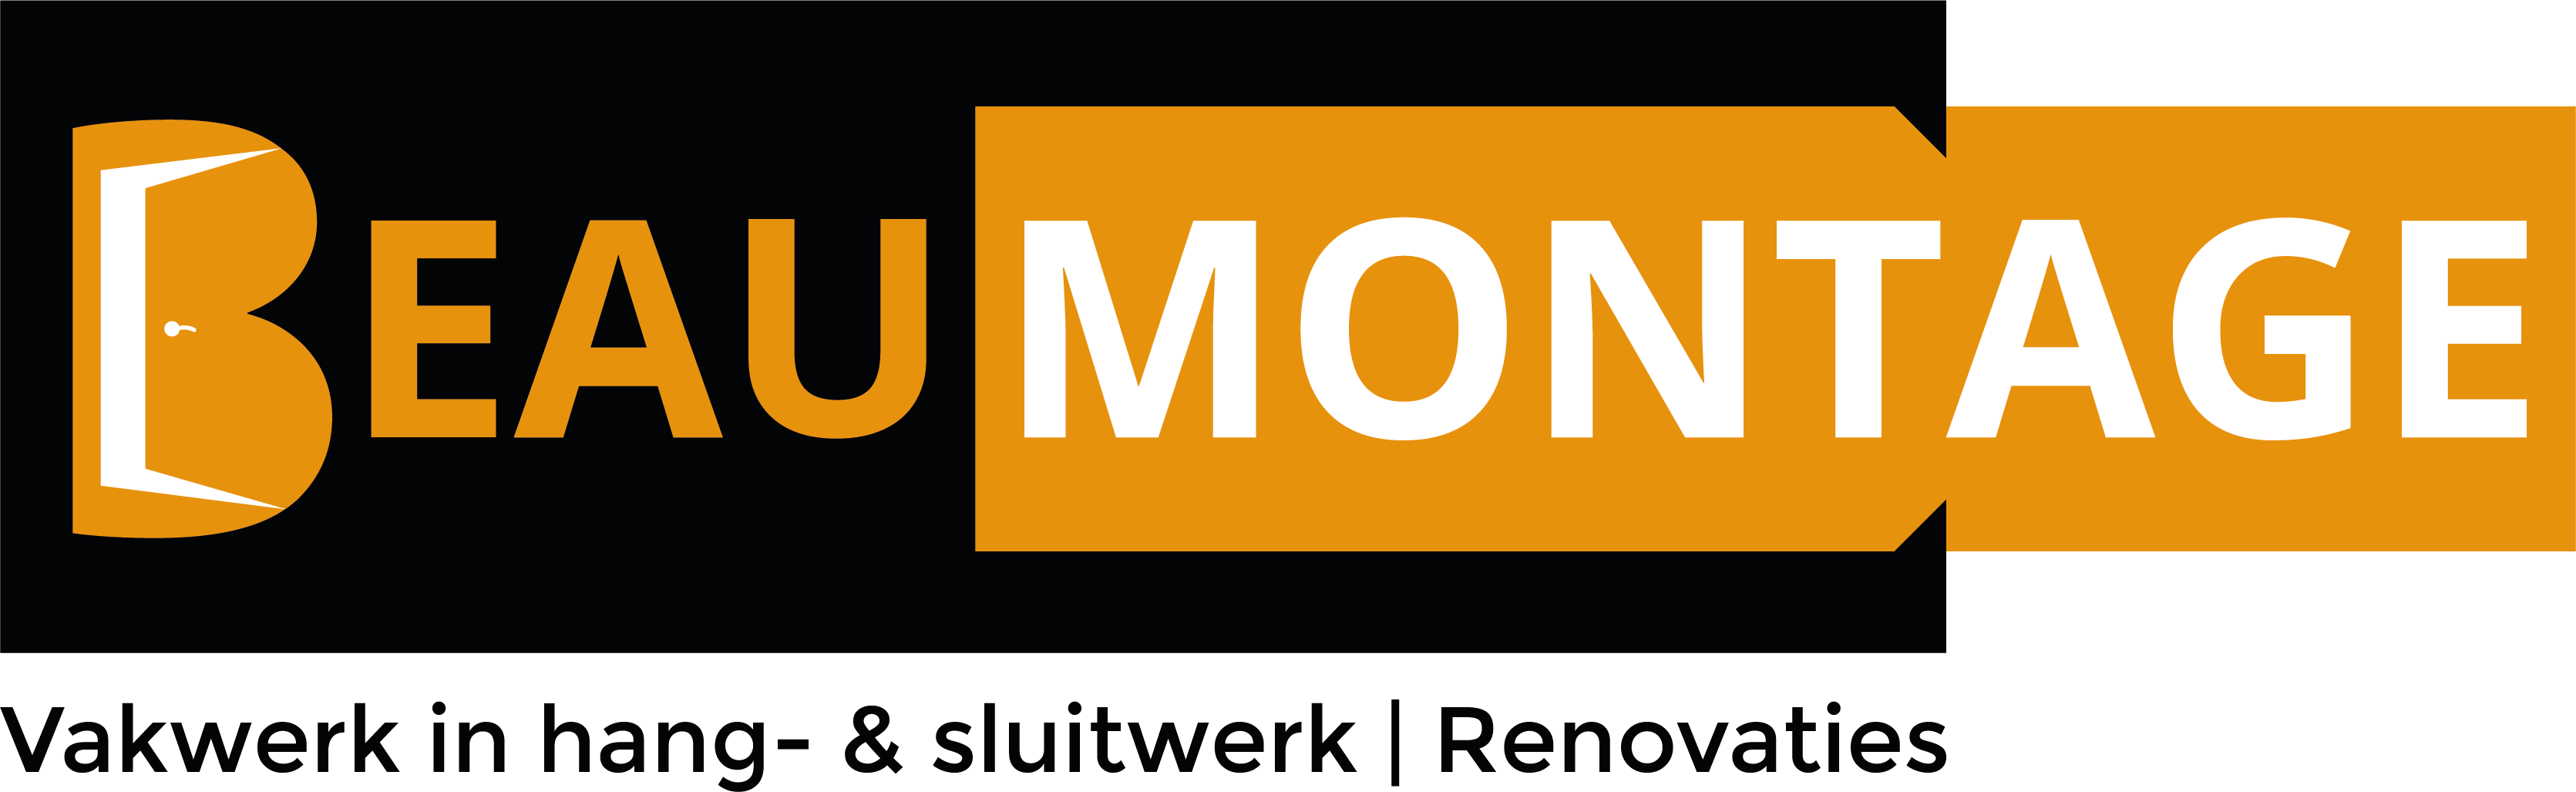 BeauMontage.nl